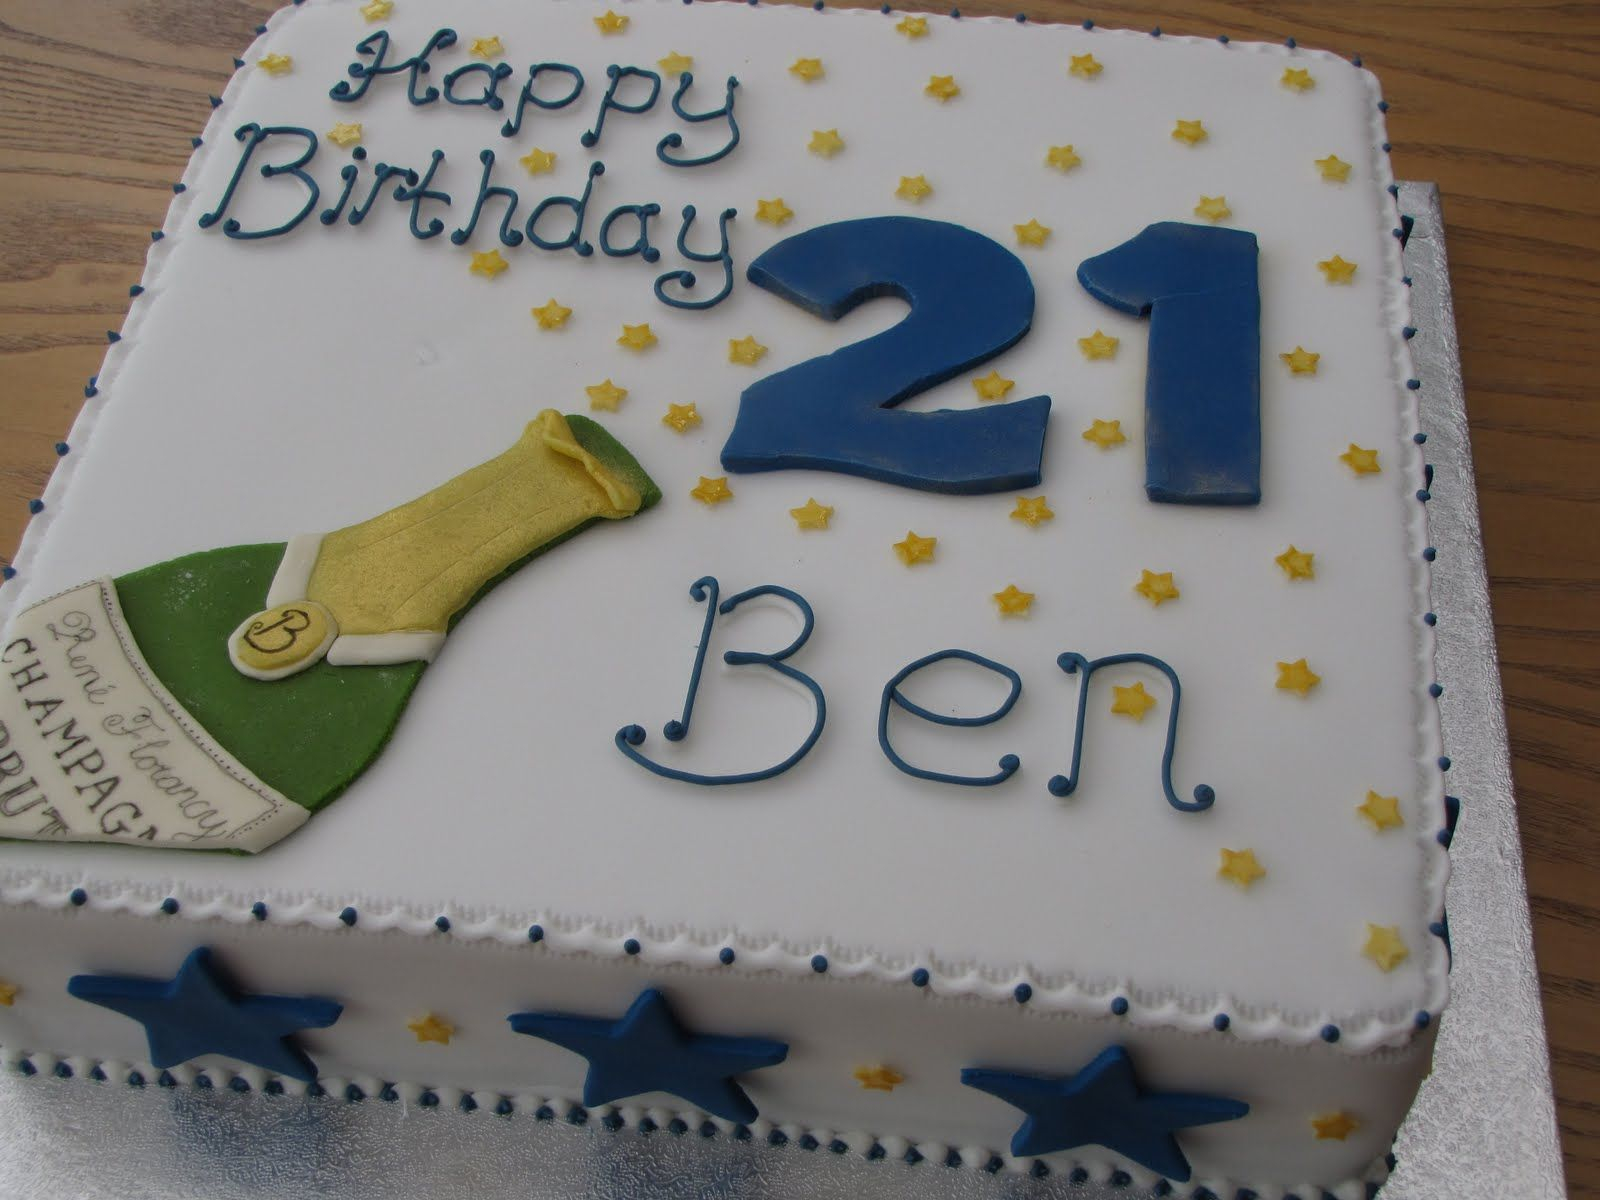 21St Birthday Cake Ideas For Him Pin Carea Cindy On Cake Idea Pinterest 21st Birthday Cakes